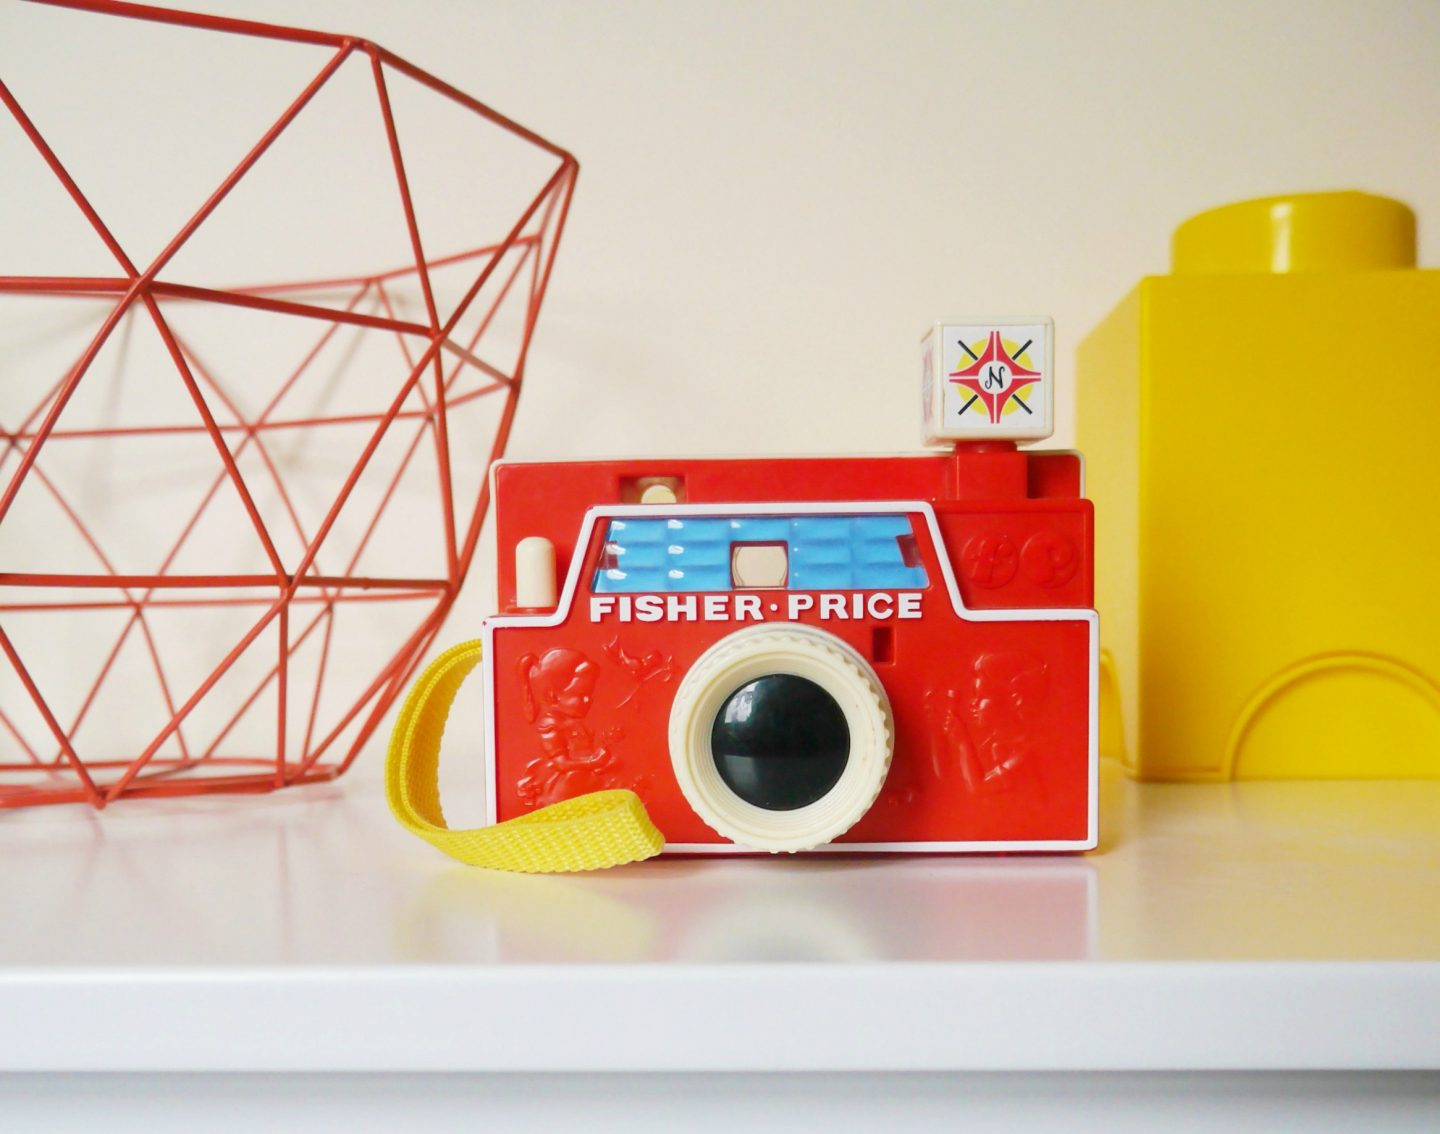 GLTC Easy Reach Storage review - Fisher Price vintage camera